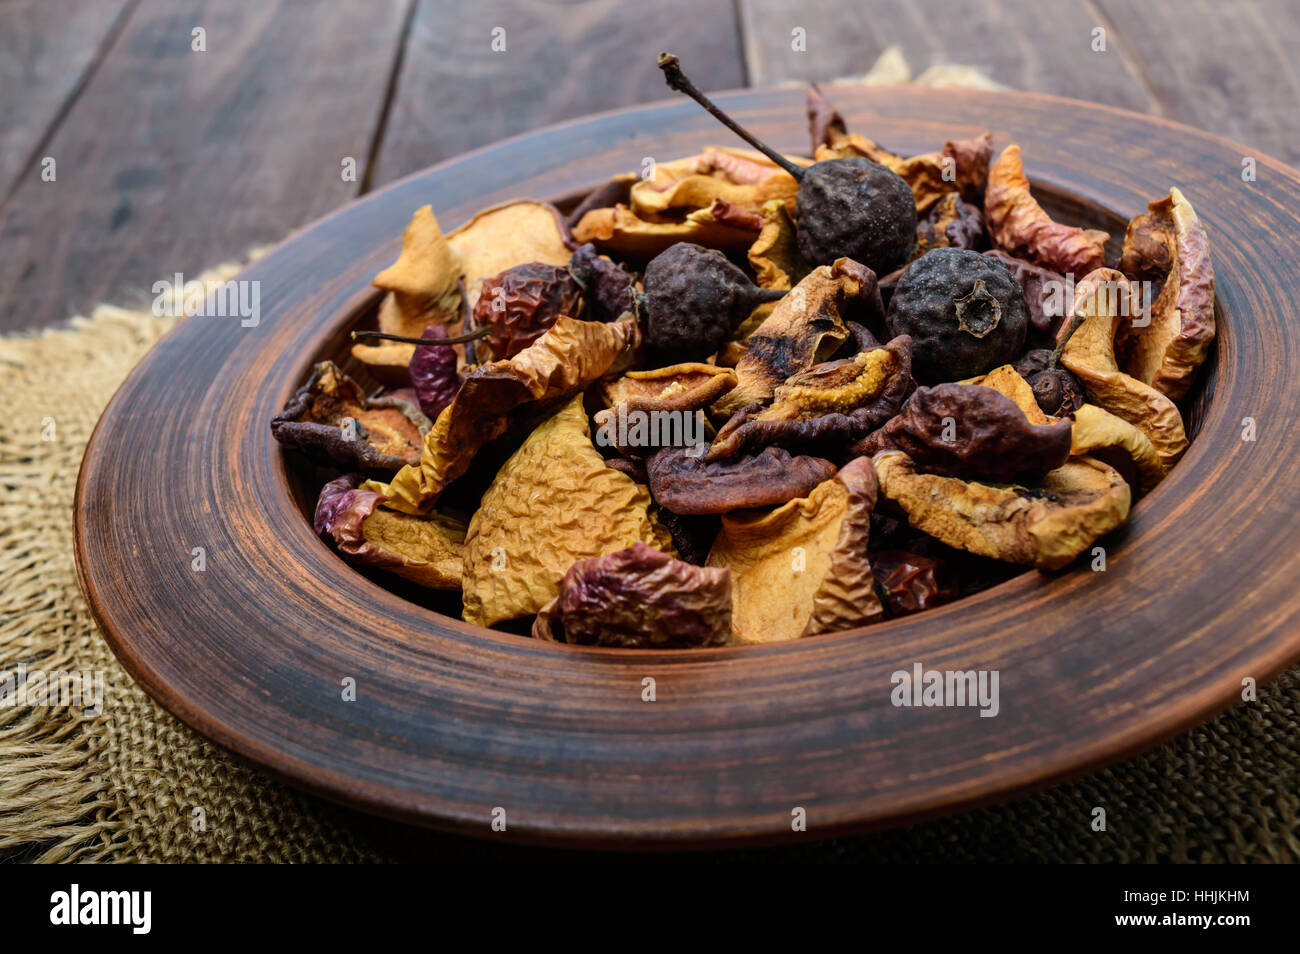 Dried fruit (apples, pears, apricots), berries in a bowl on dark wooden background. Close up. Ingredients for the - Stock Image